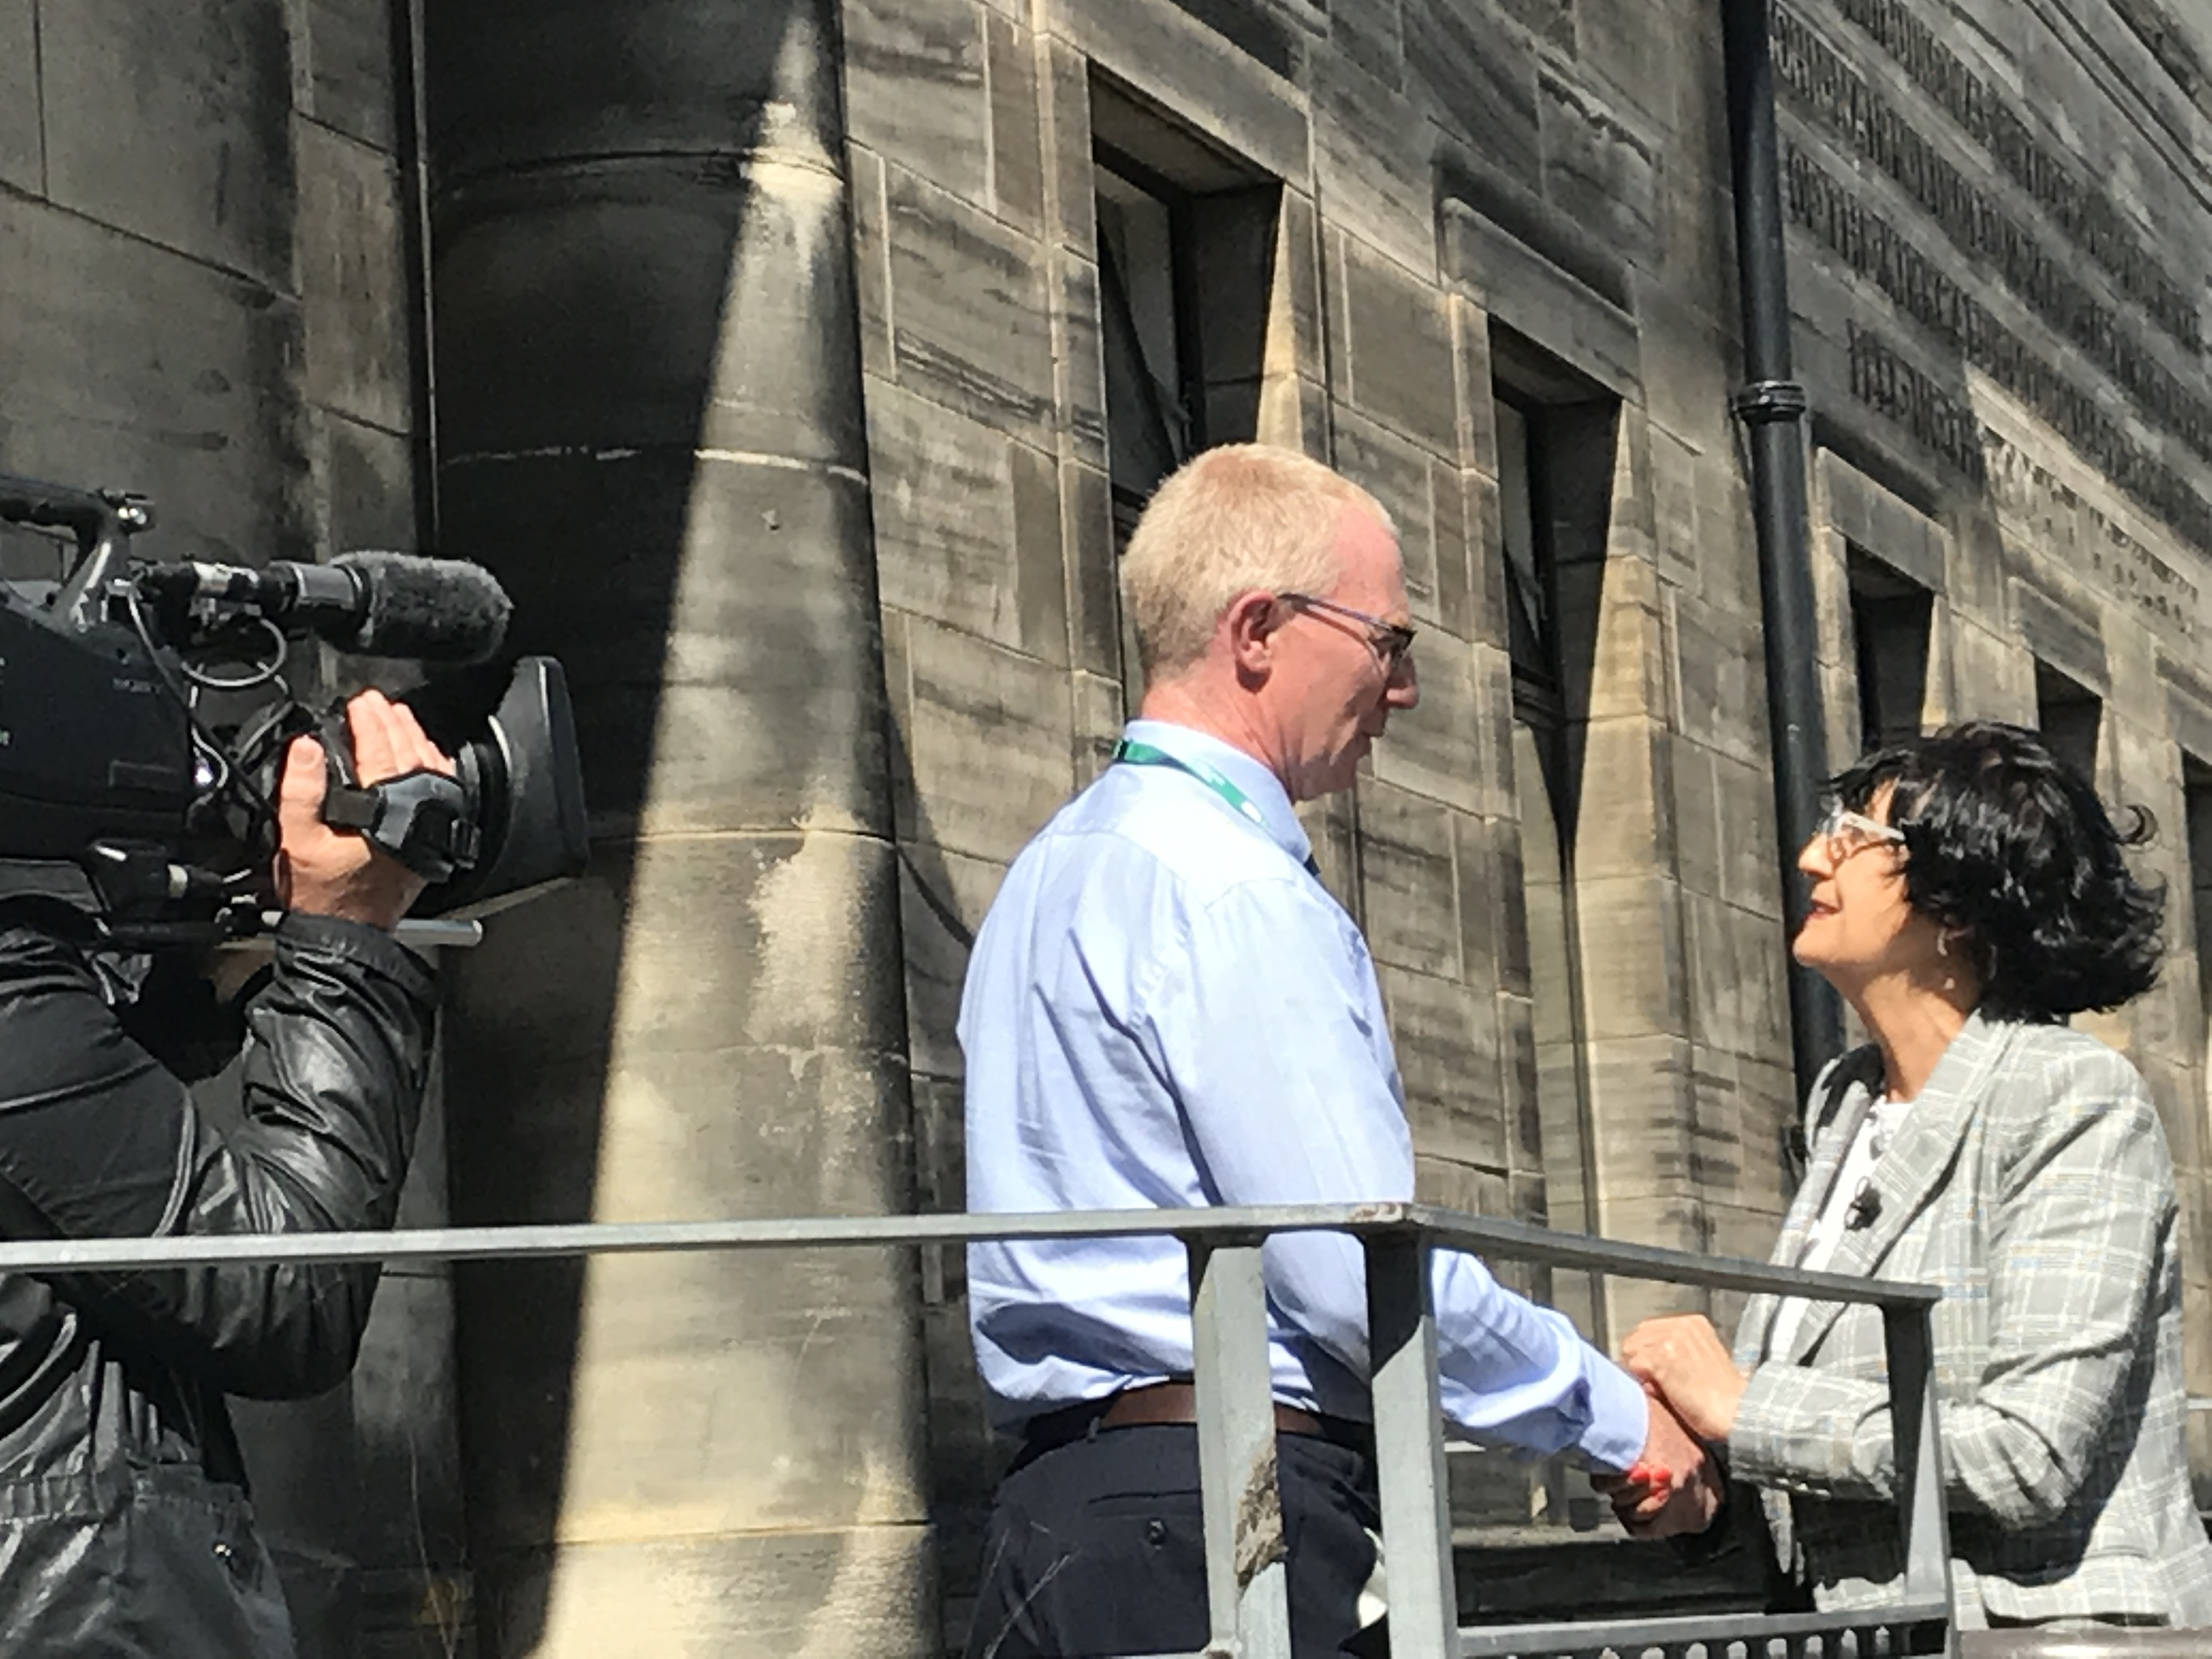 Collections curator Gavin Grant greets Anita Manning on the steps of Kirkcaldy Galleries.